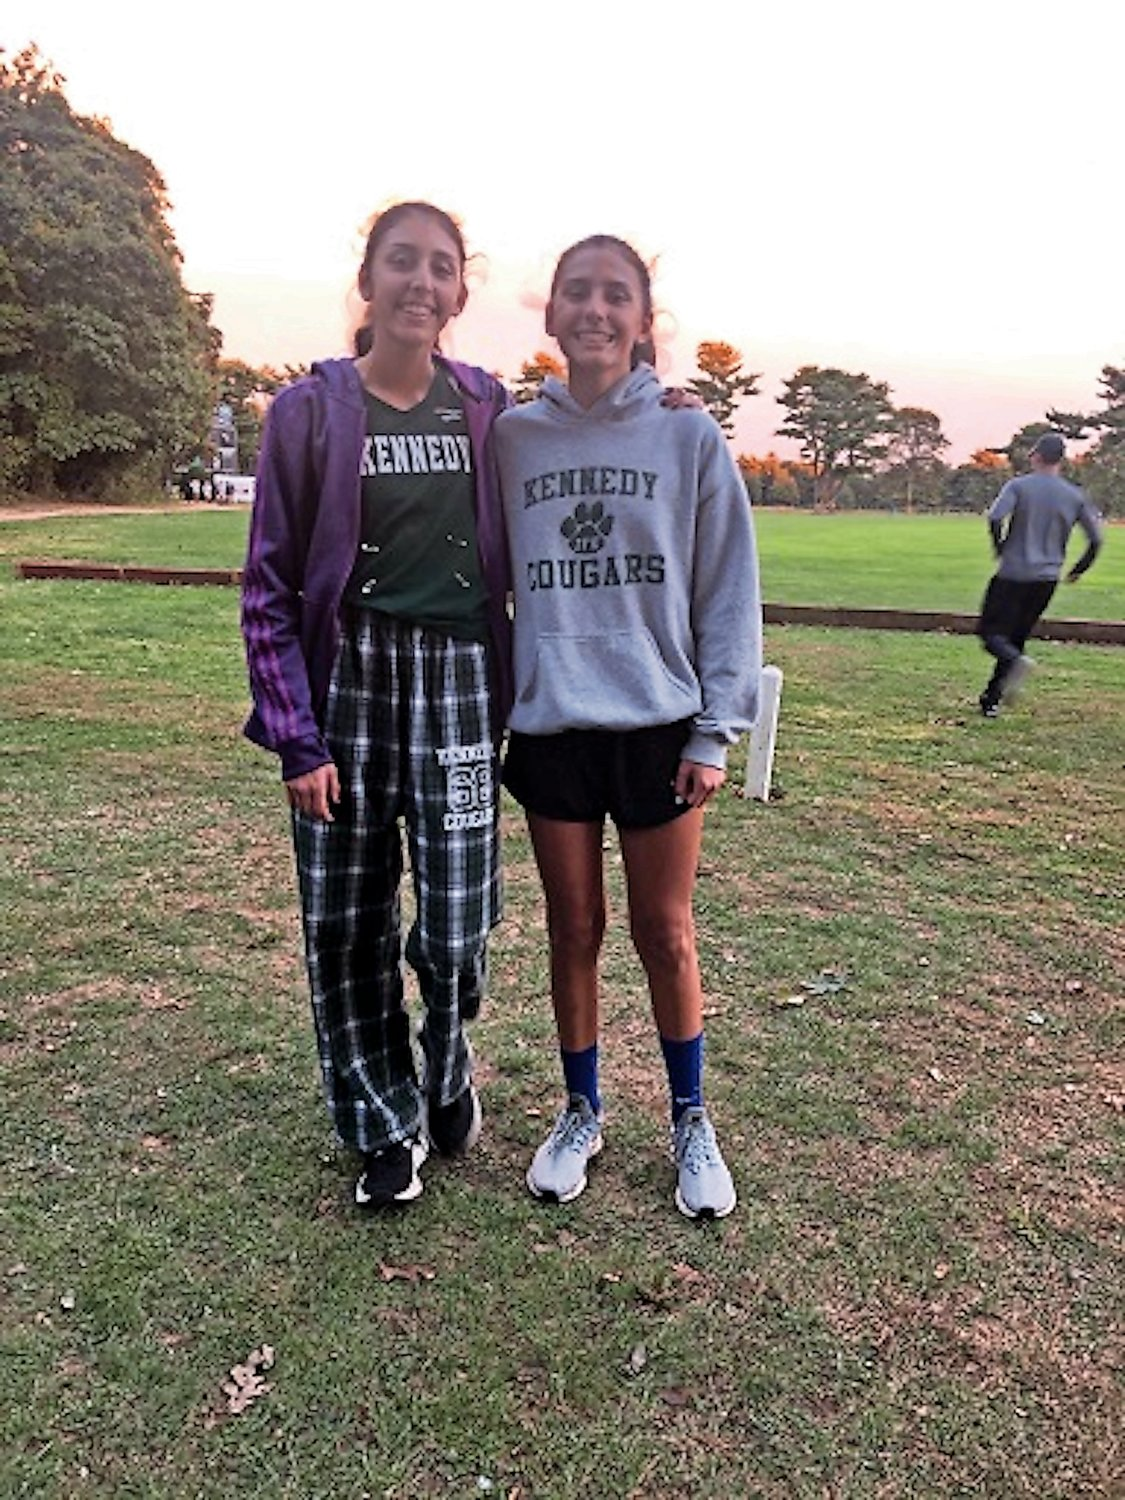 Maya, left, and Marissa Spottiswood, of South Merrick, are the first teammates and siblings in John F. Kennedy High School history to complete a 5K in under 20 minutes at the same cross-country meet.